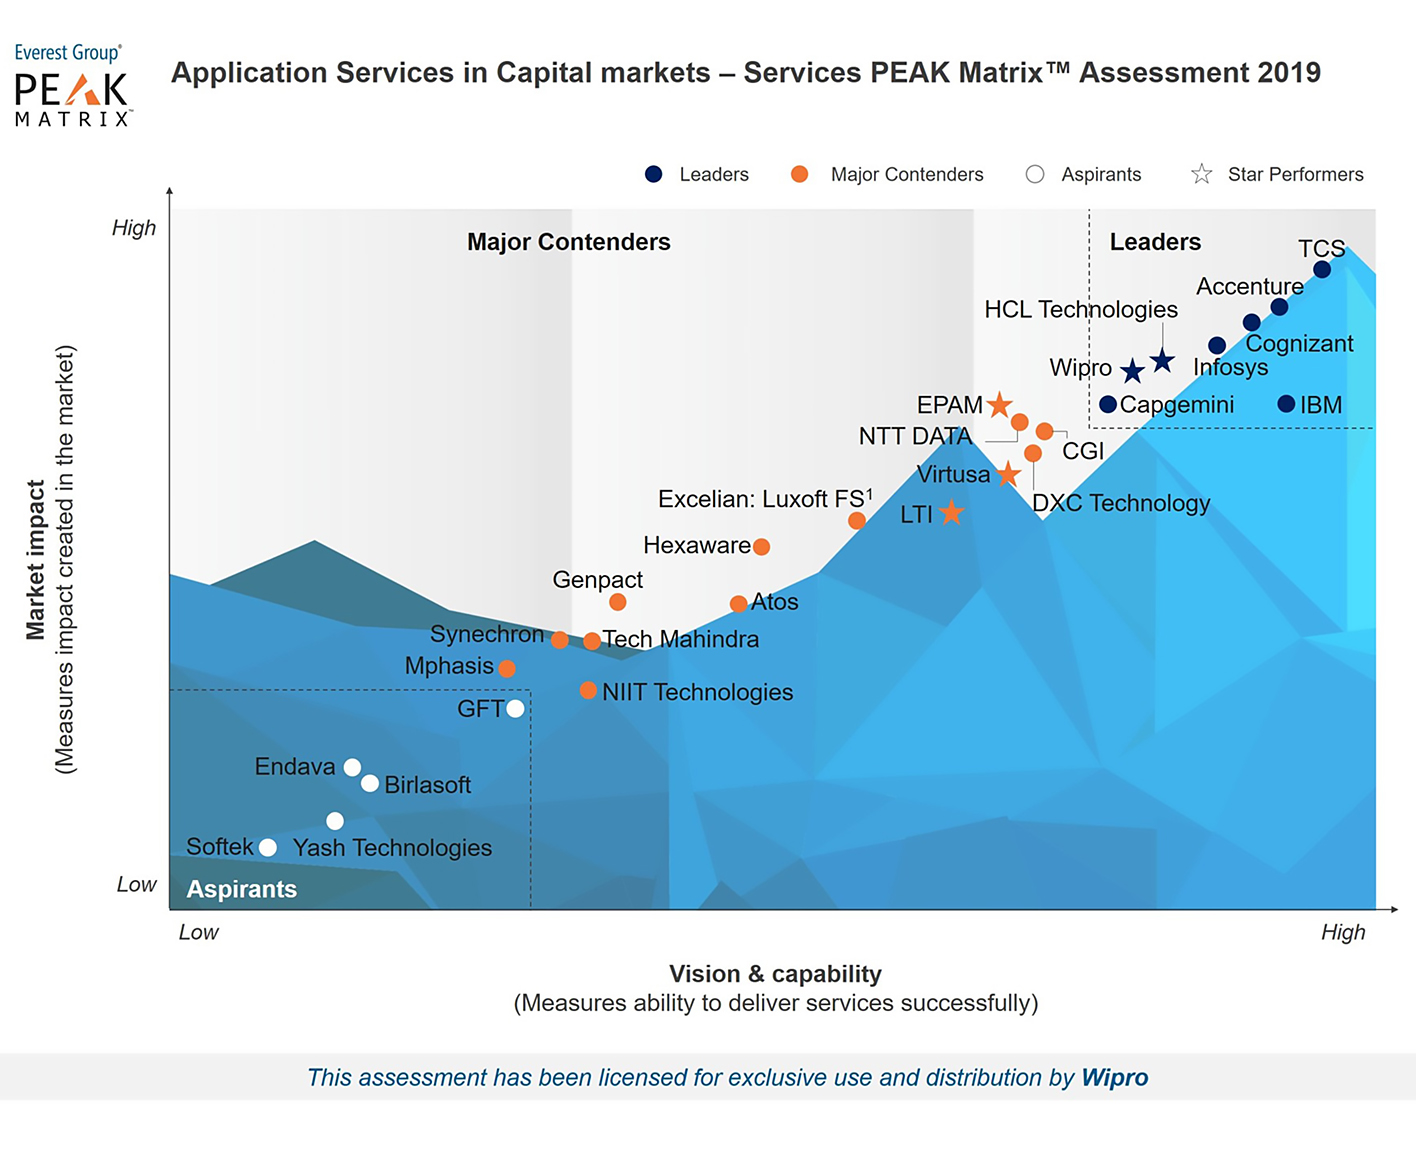 Wipro is a Leader and Star Performer in Everest Group's PEAK Matrix™ Assessment 2019 for Application Services in Capital Markets